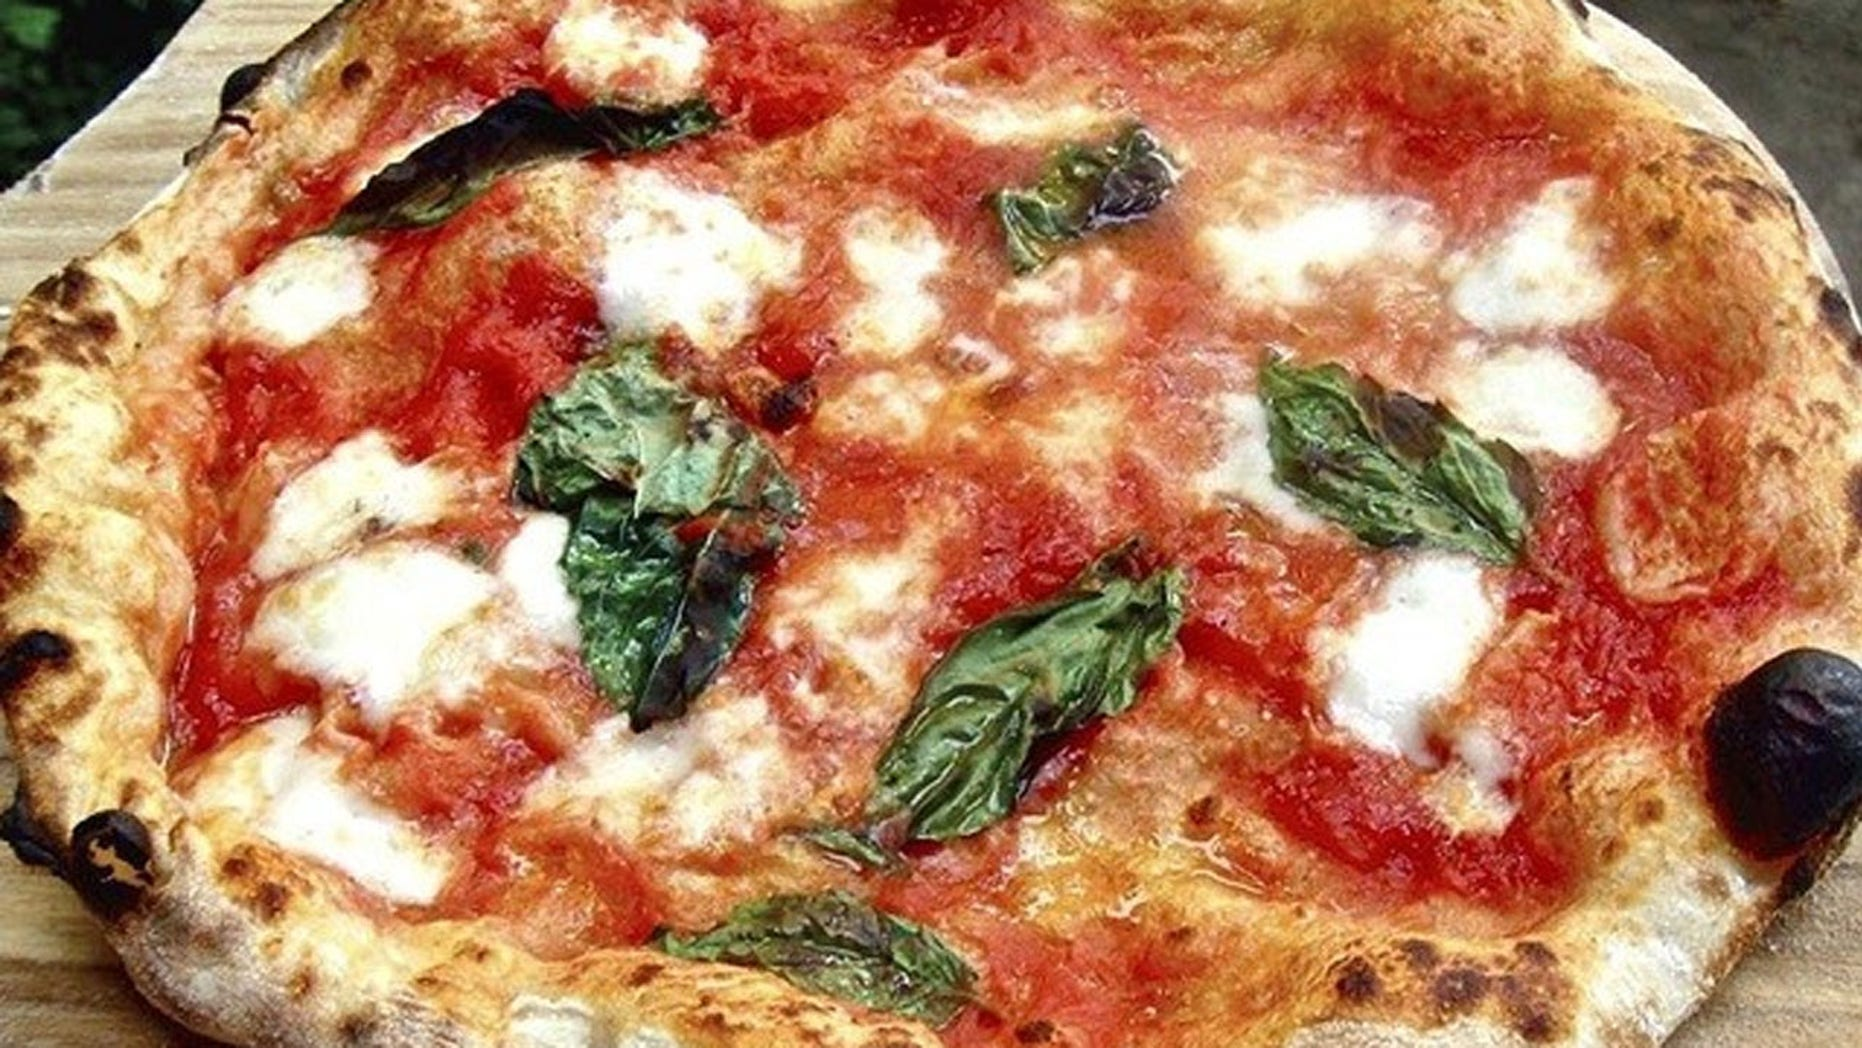 Italy will put forward the art of Neapolitan pizza-making for inclusion in Unesco's prestigious cultural heritage list this year.